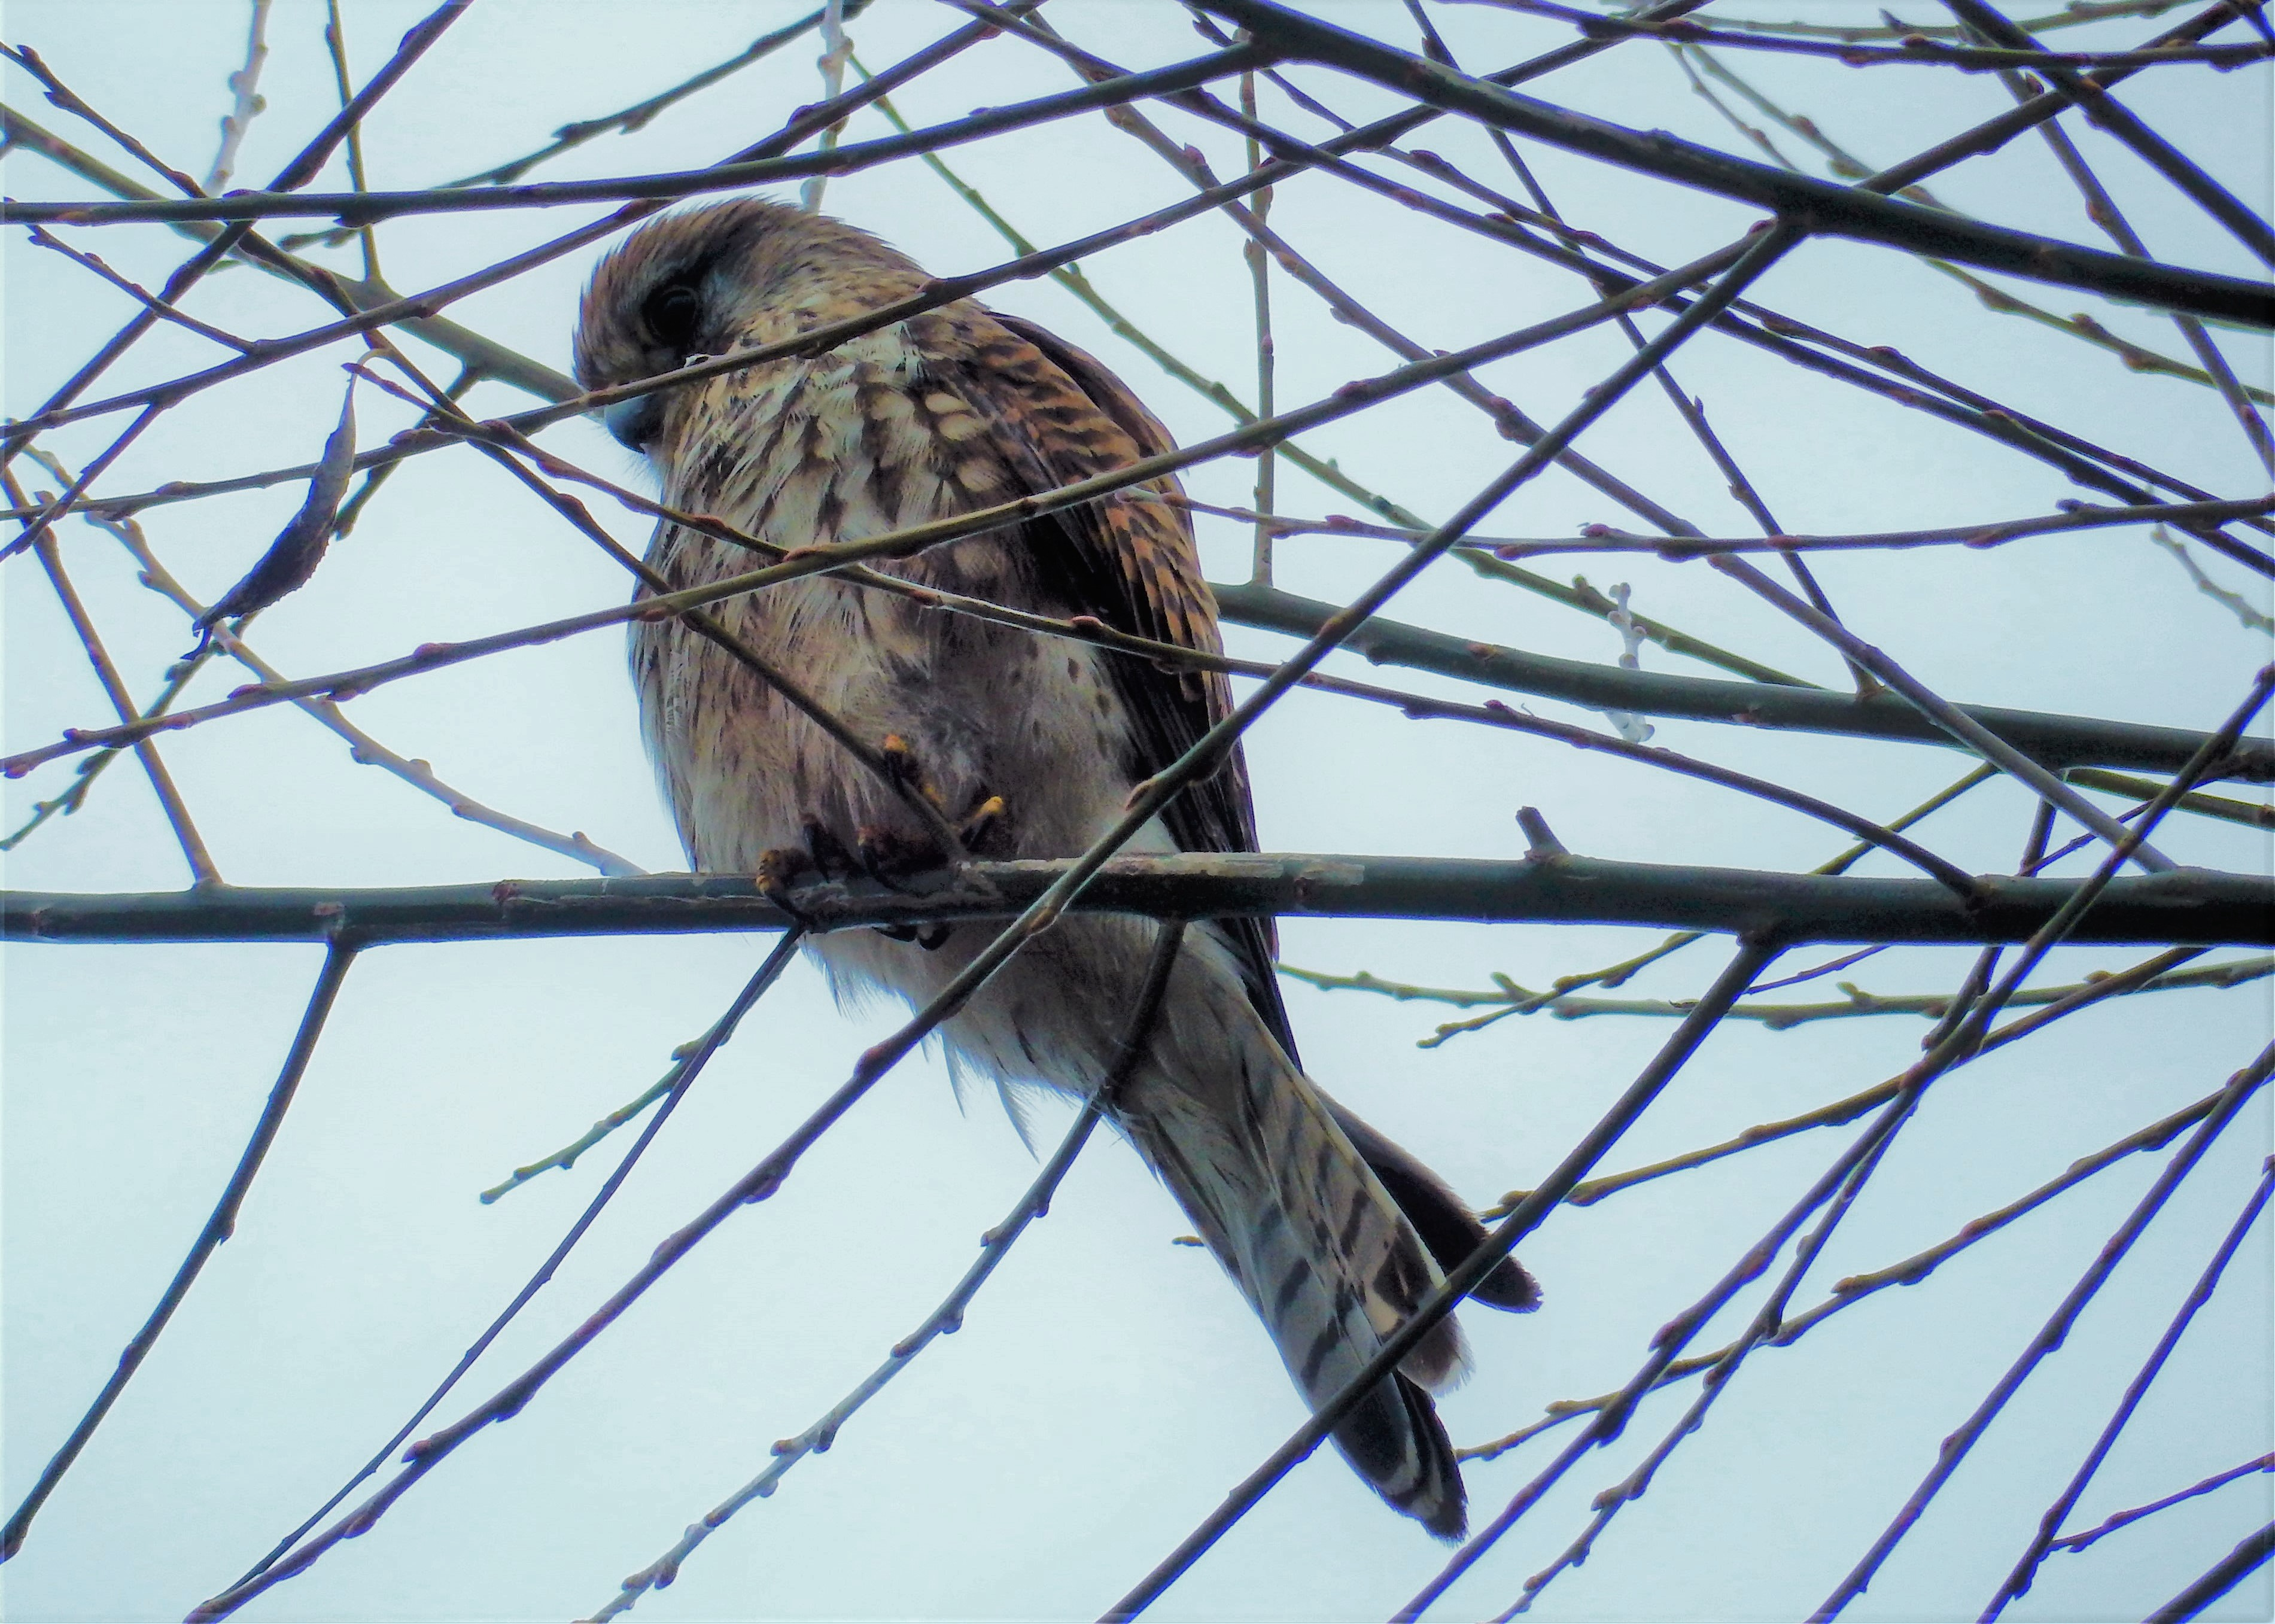 Kestrel perched in a tree amidst spindly branches.